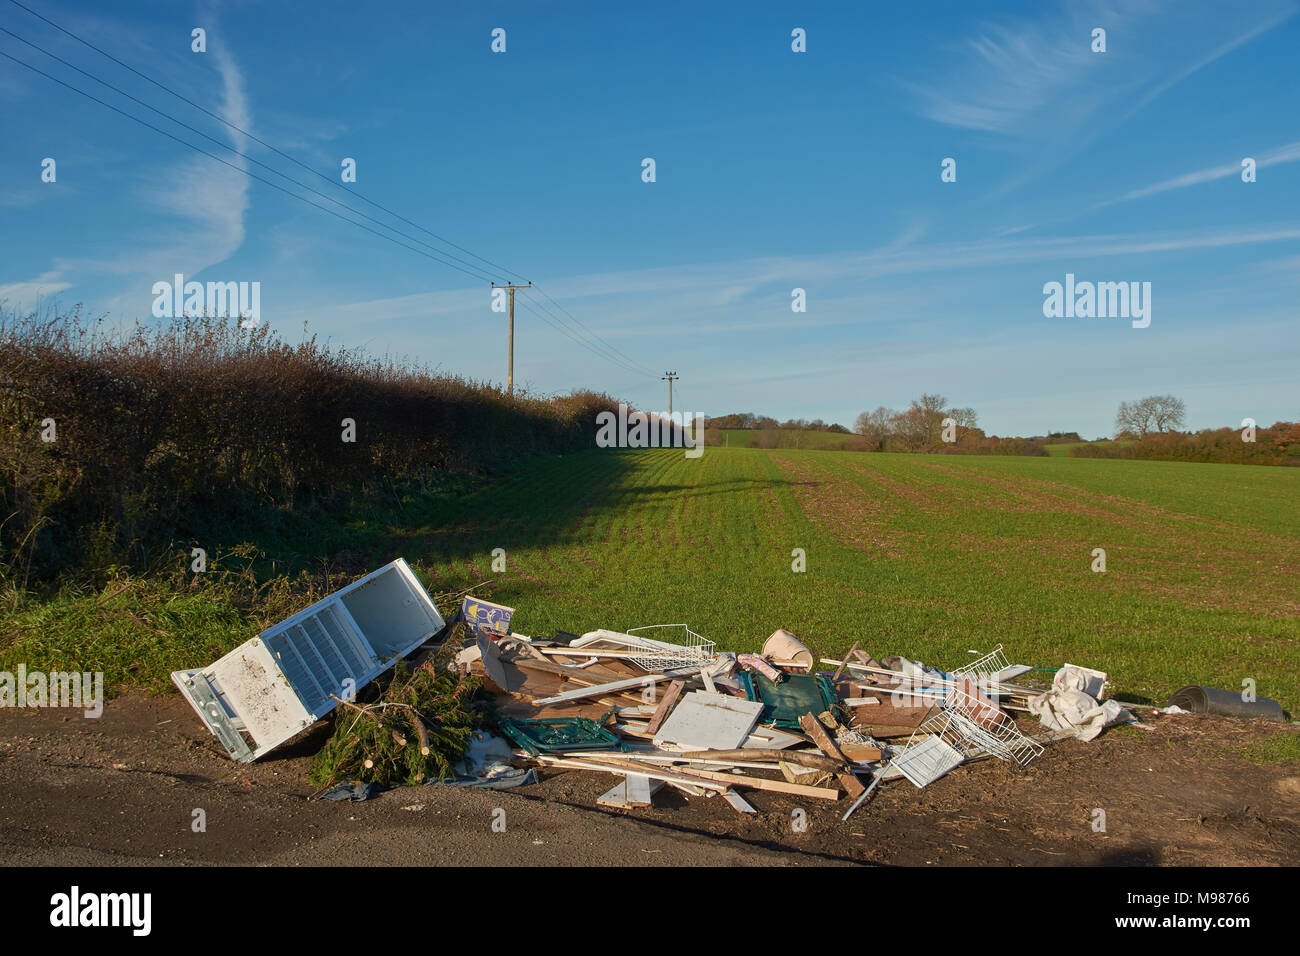 Recyclinghof Hamburg Niendorf Discarded Fridge Stock Photos And Discarded Fridge Stock